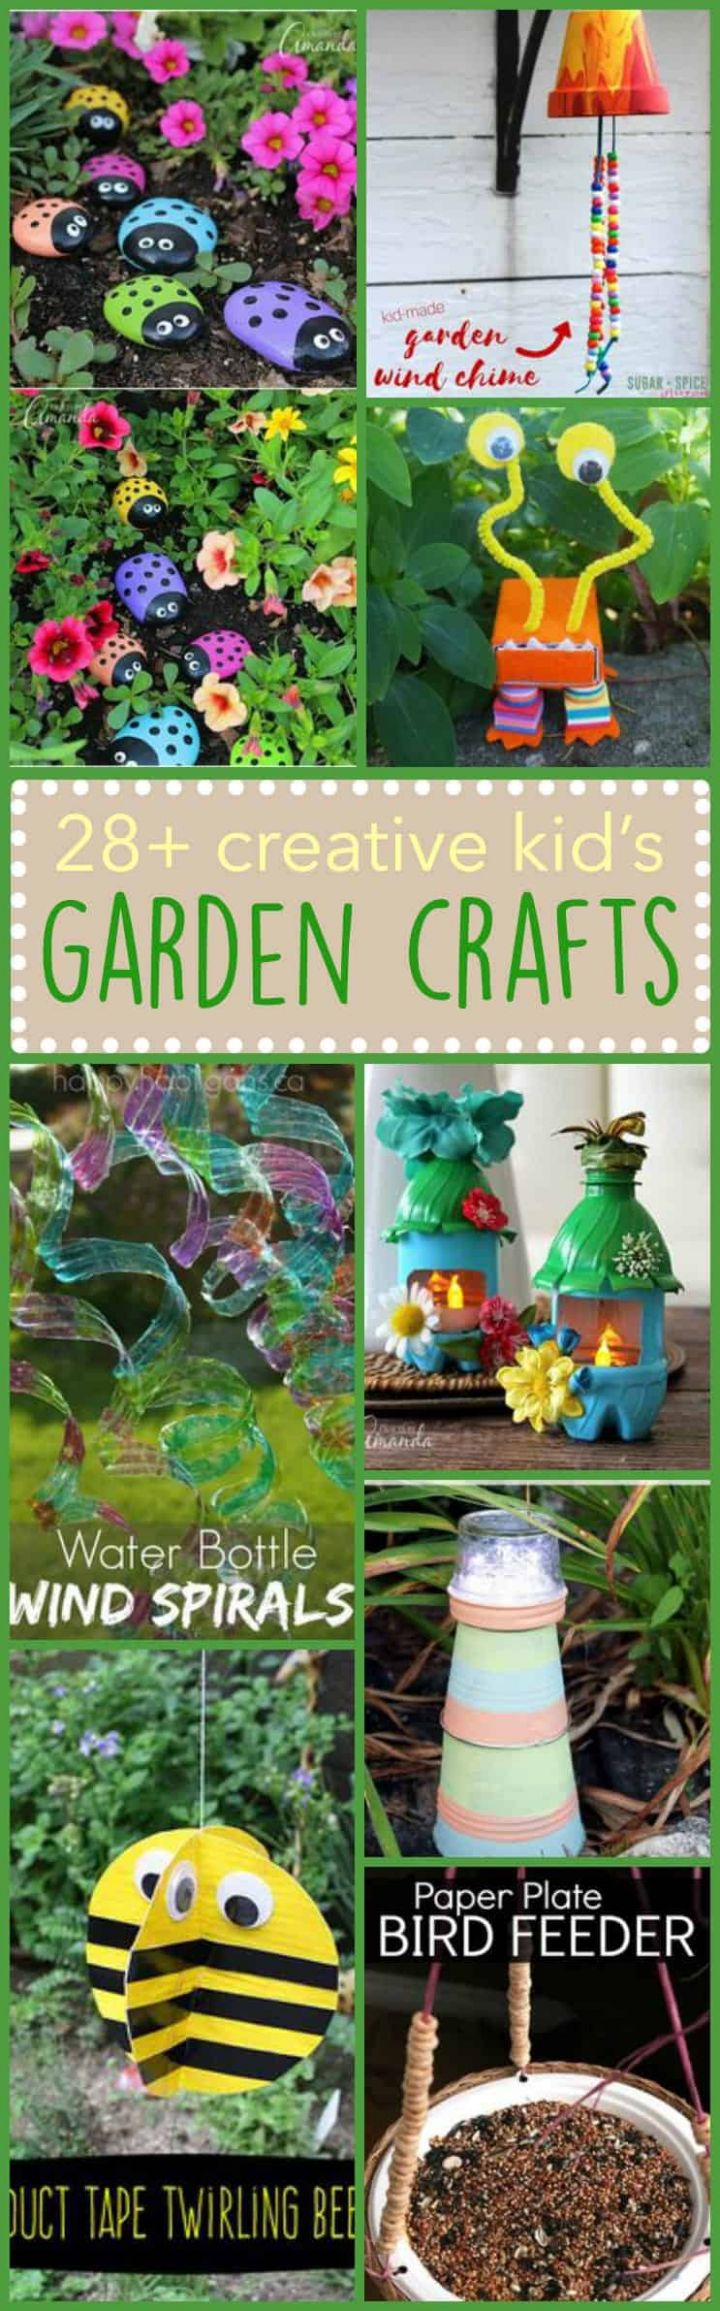 Kid's Garden Crafts: 12+ creative ideas for the little ones